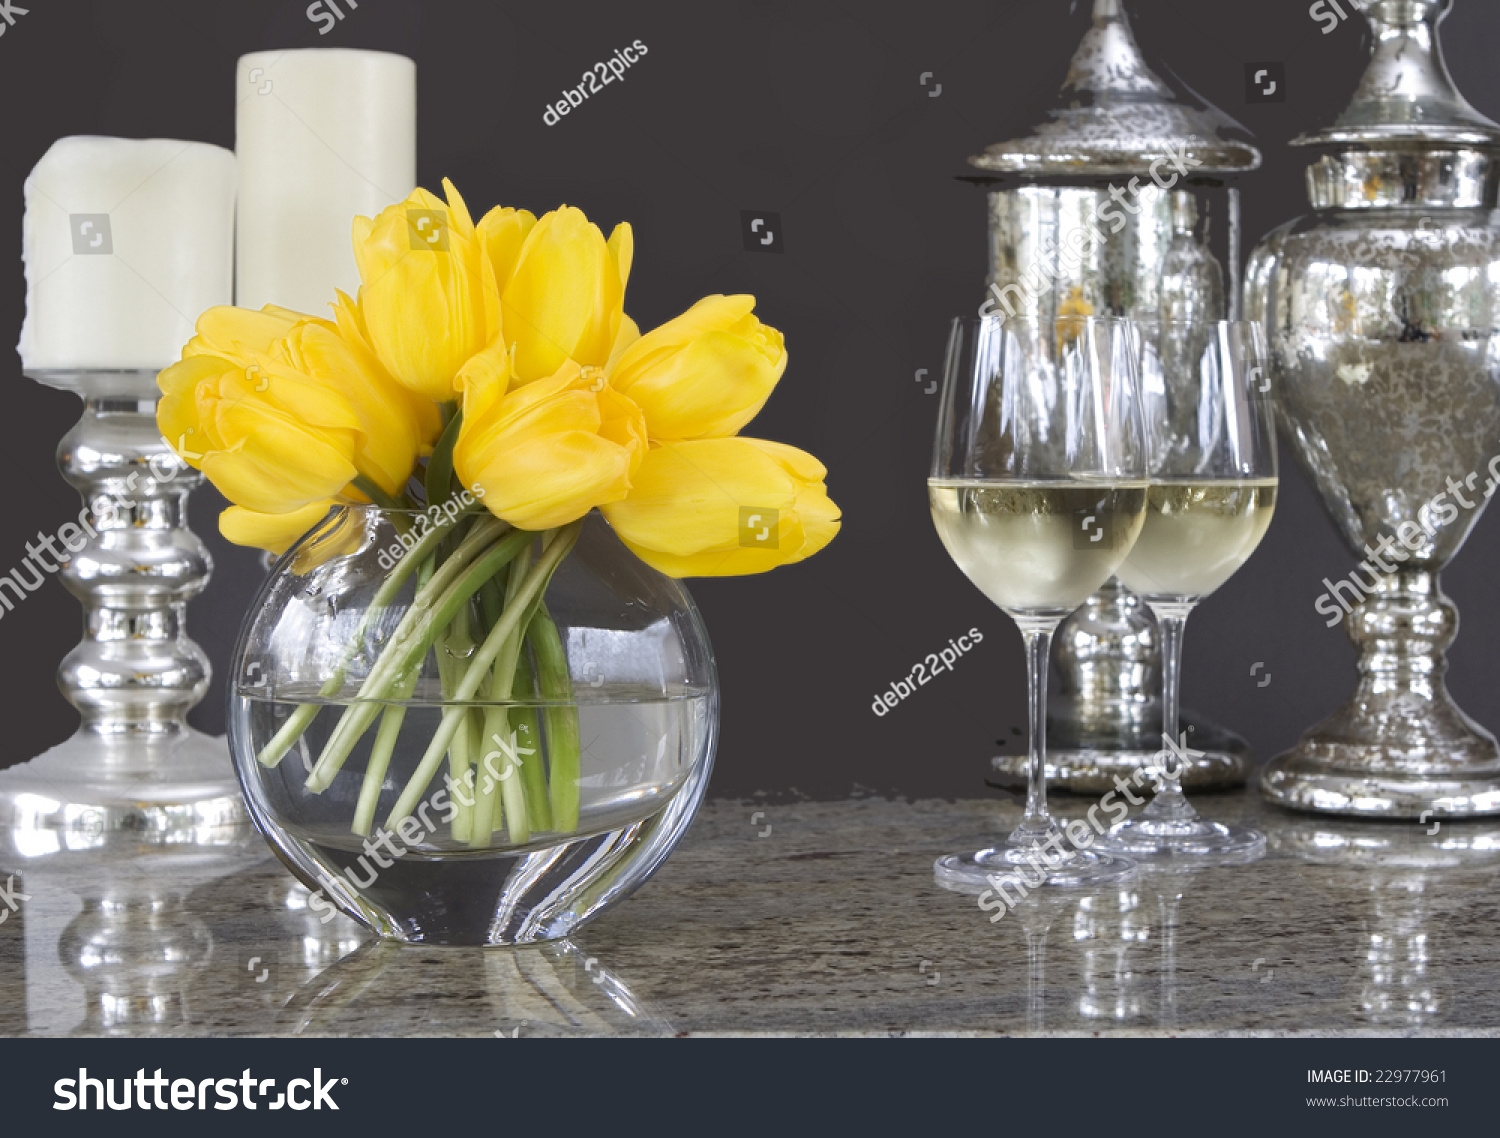 Yellow Tulips In Vase With Glasses Of Wine & Home Decor